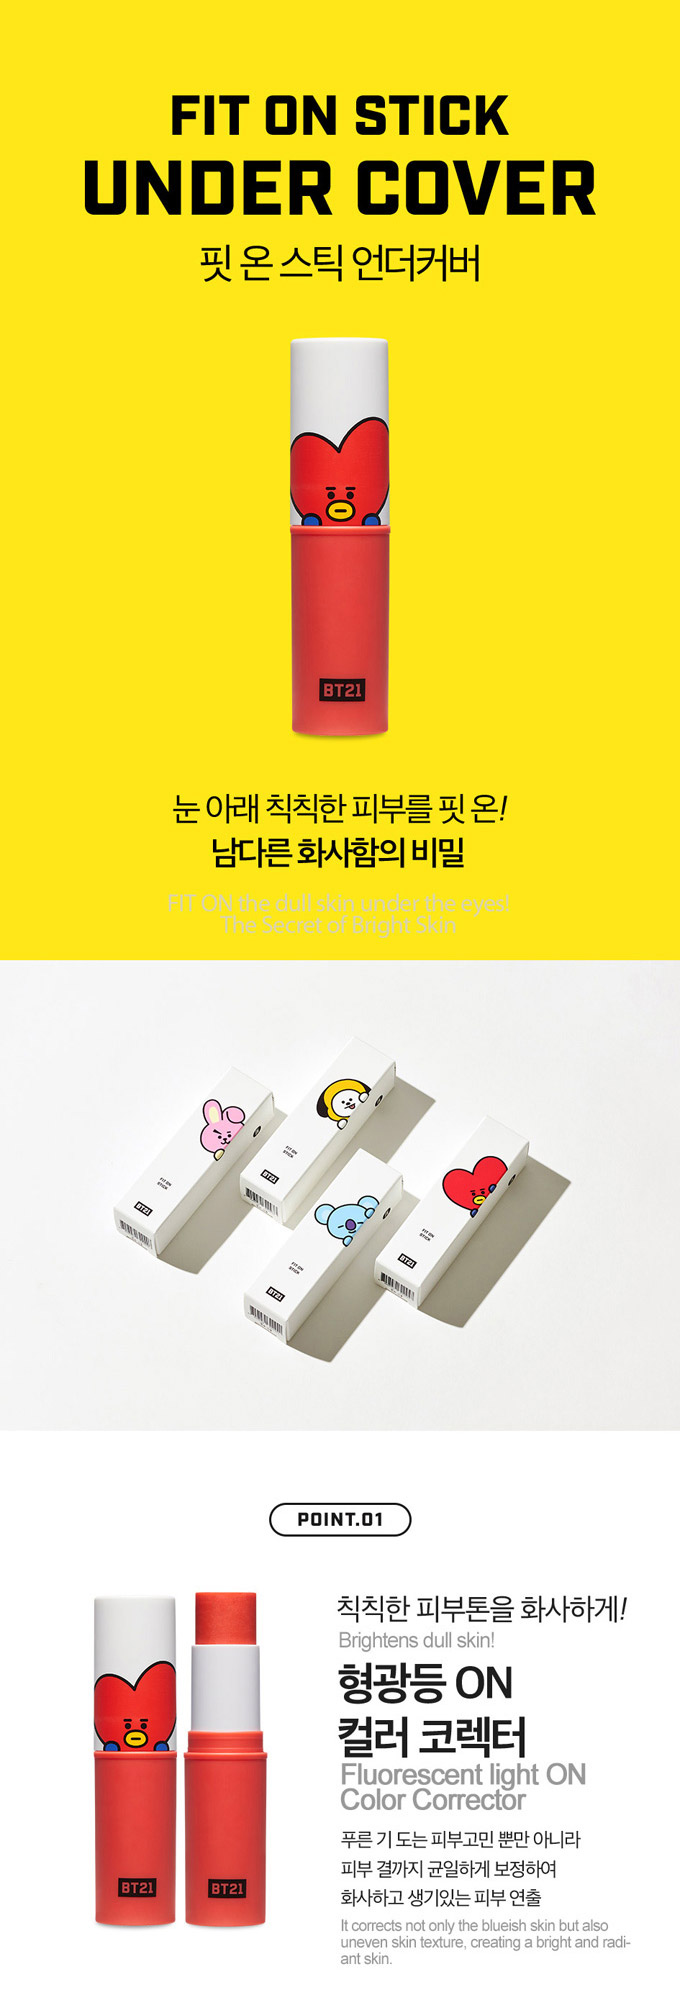 vt_bt21_fiton_under_cover-1